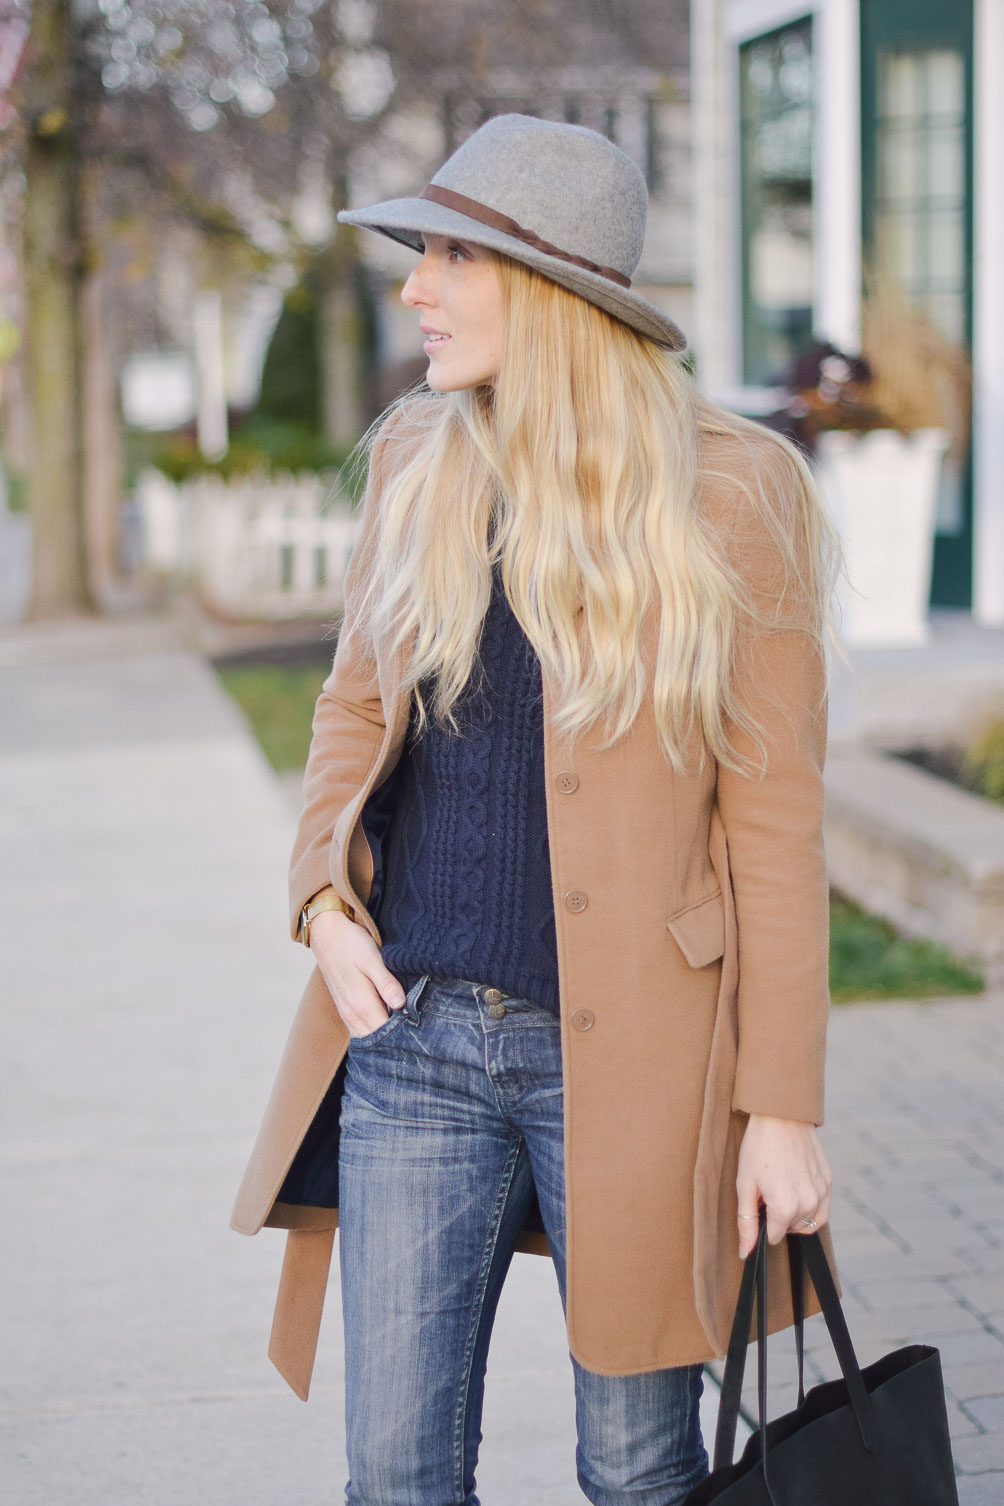 styling a camel winter coat with felt fedora, cable knit sweater, distressed boyfriend jeans and buckle boots